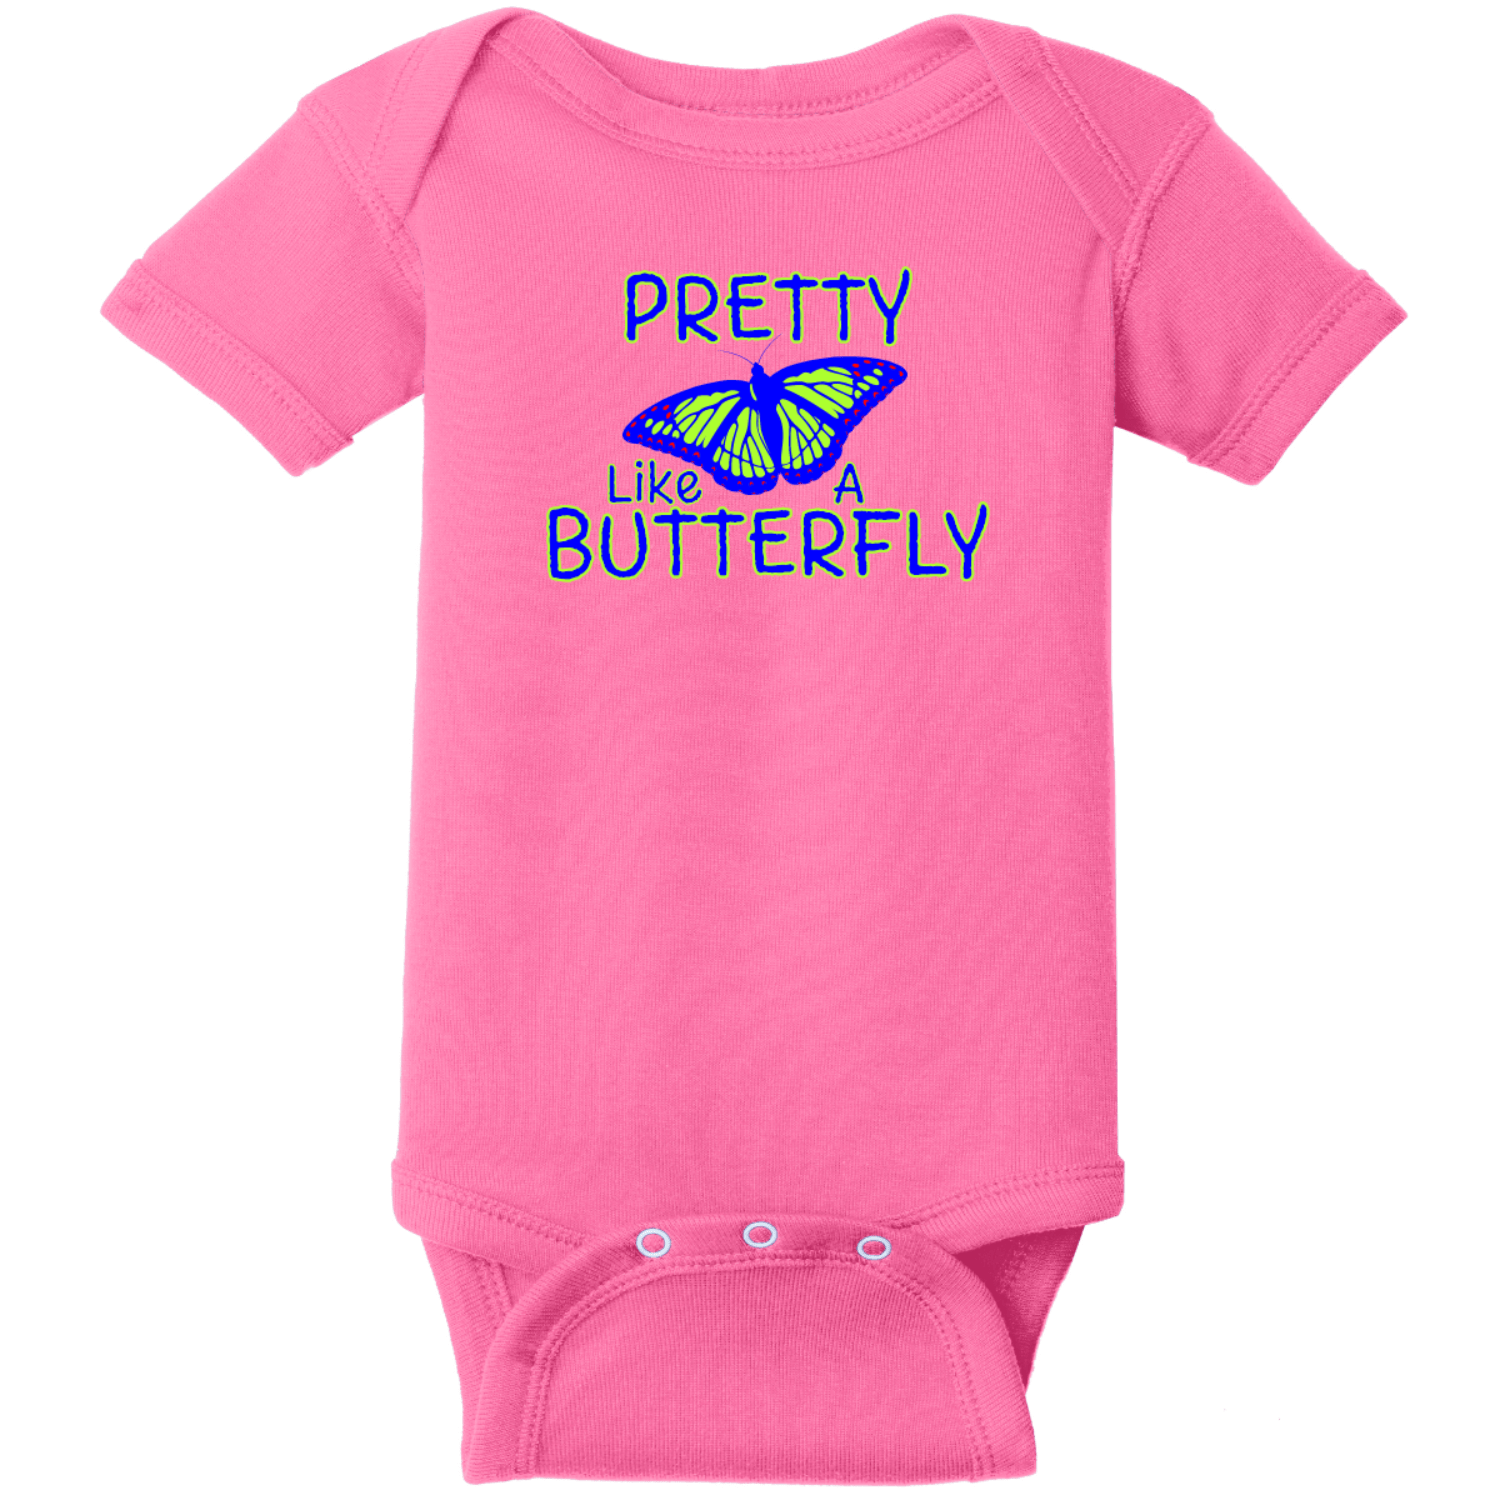 Pretty Like A Butterfly Baby Bodysuit Hot Pink Rabbit Skins Infant Short Sleeve Infant Rib Bodysuit RS4400